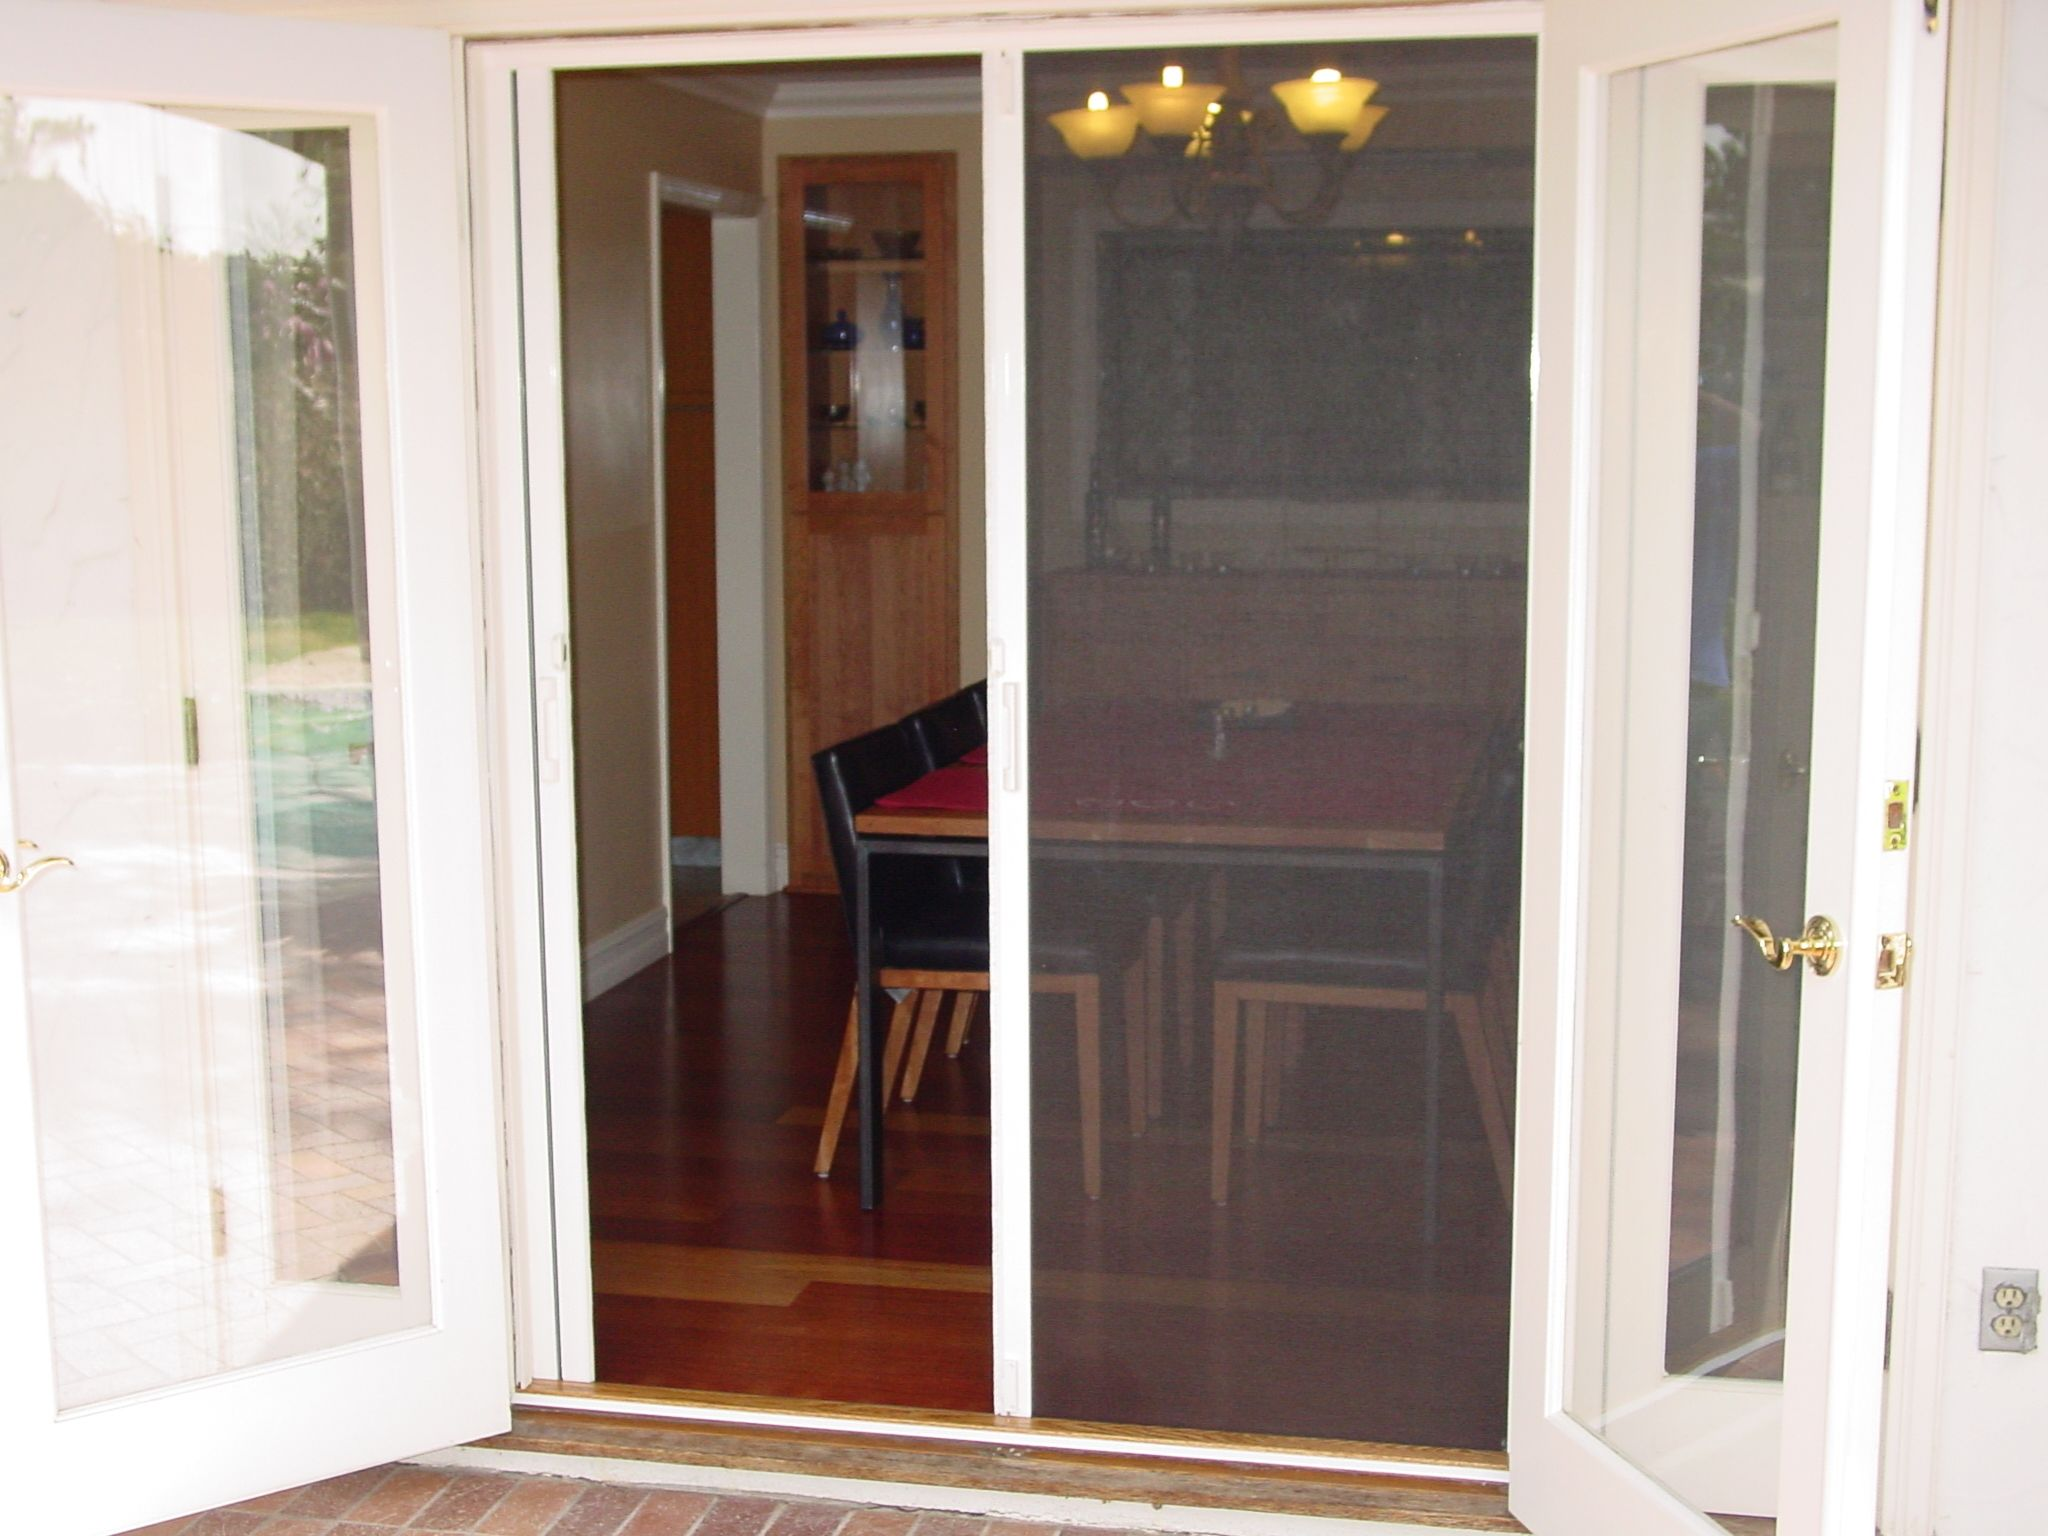 Ideas french doors home depot for inspiring front door design ideas door sizes home depot home depot french doors exterior outswing french doors home depot eventshaper